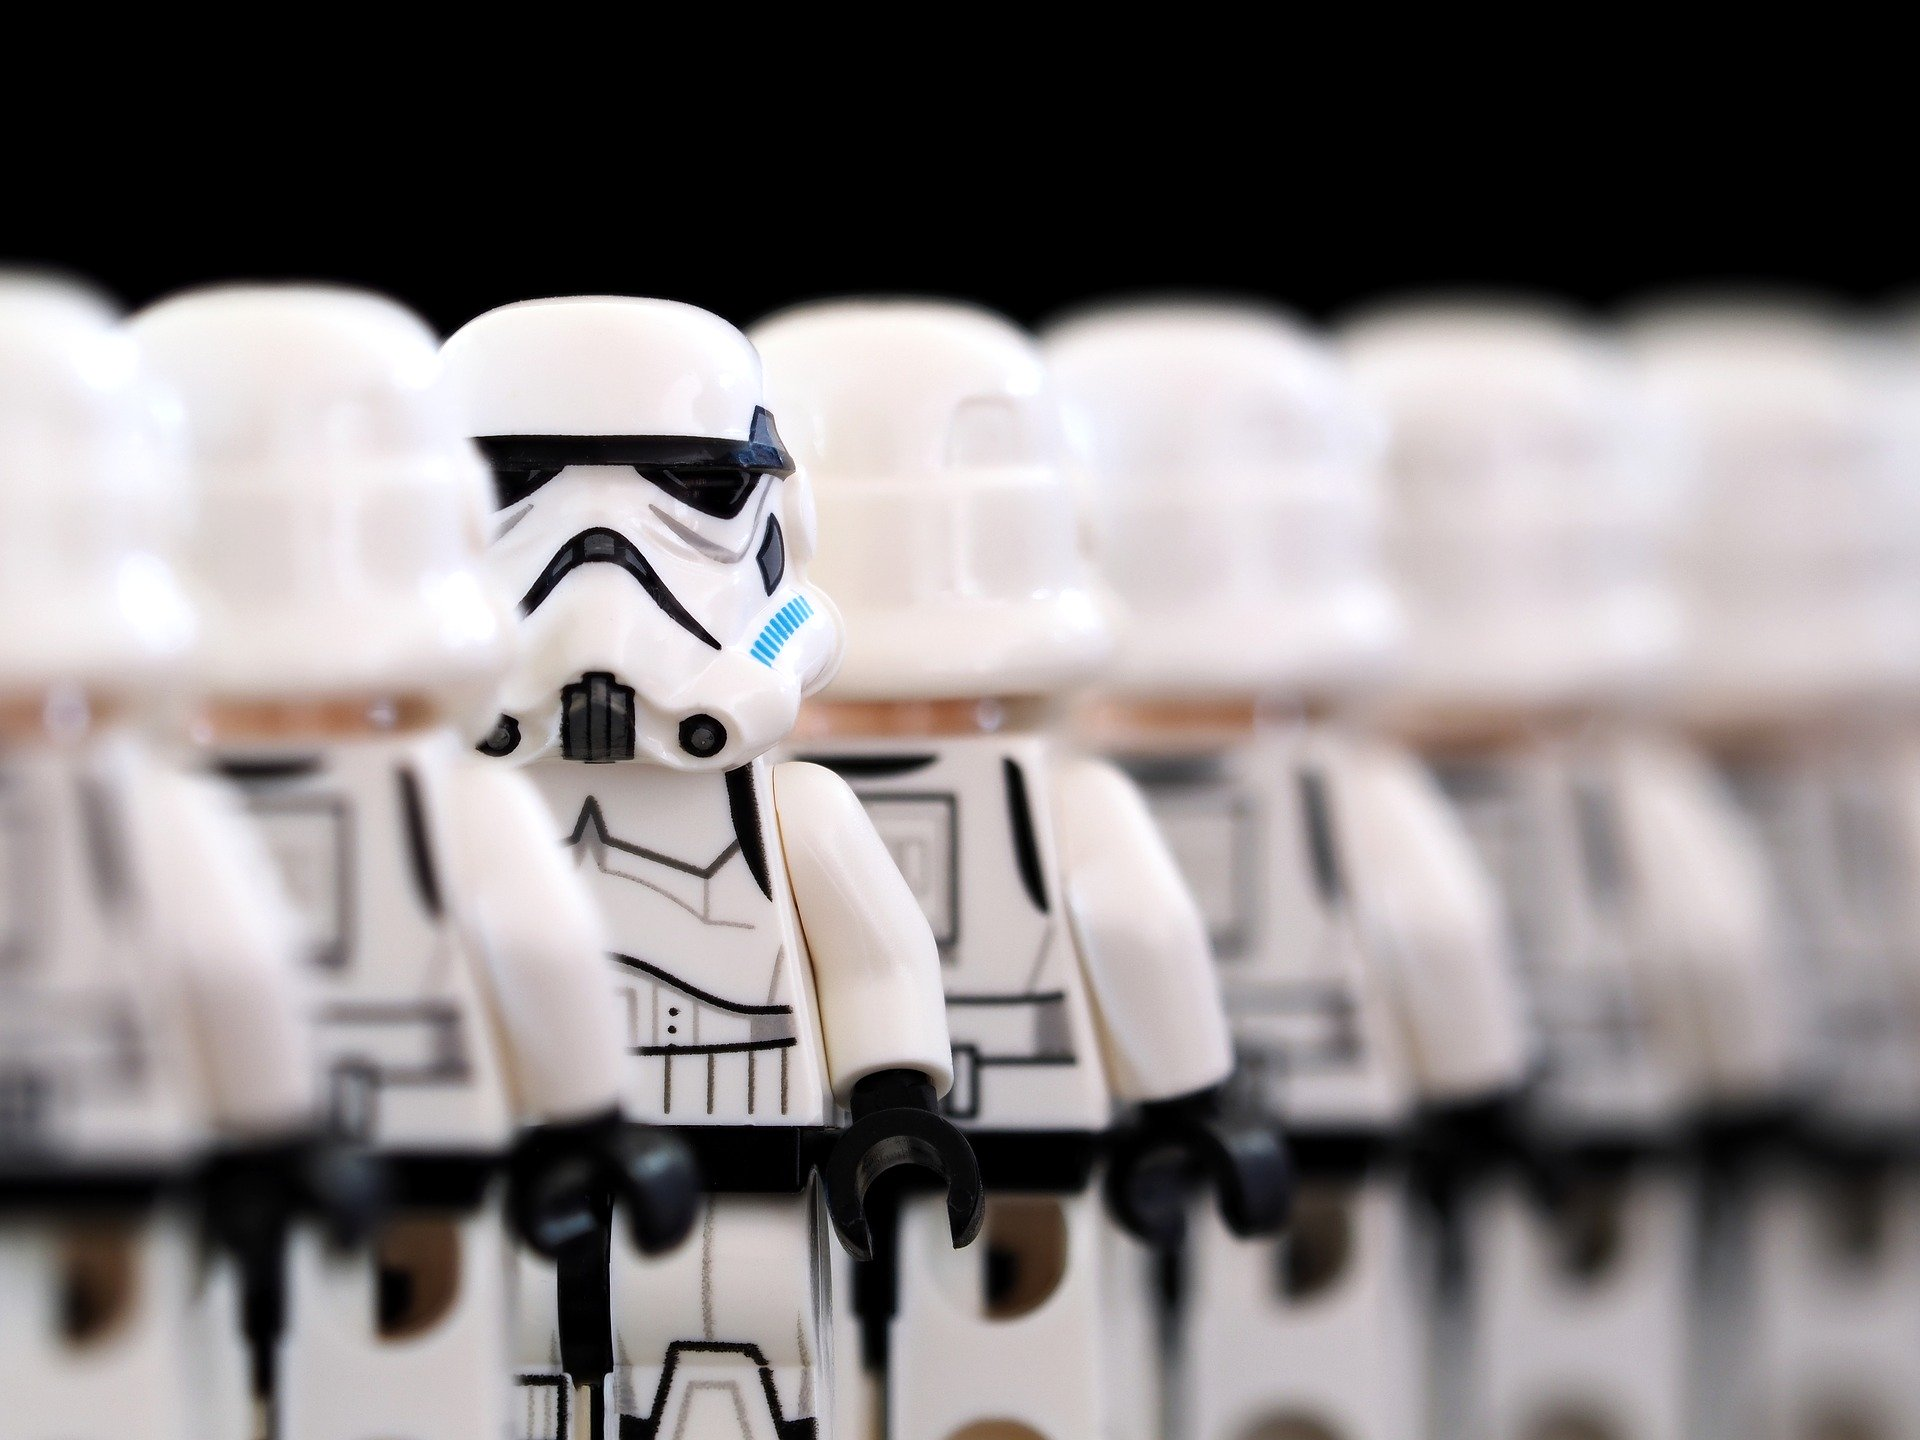 Learning from Star Wars: Don't trade freedom for security